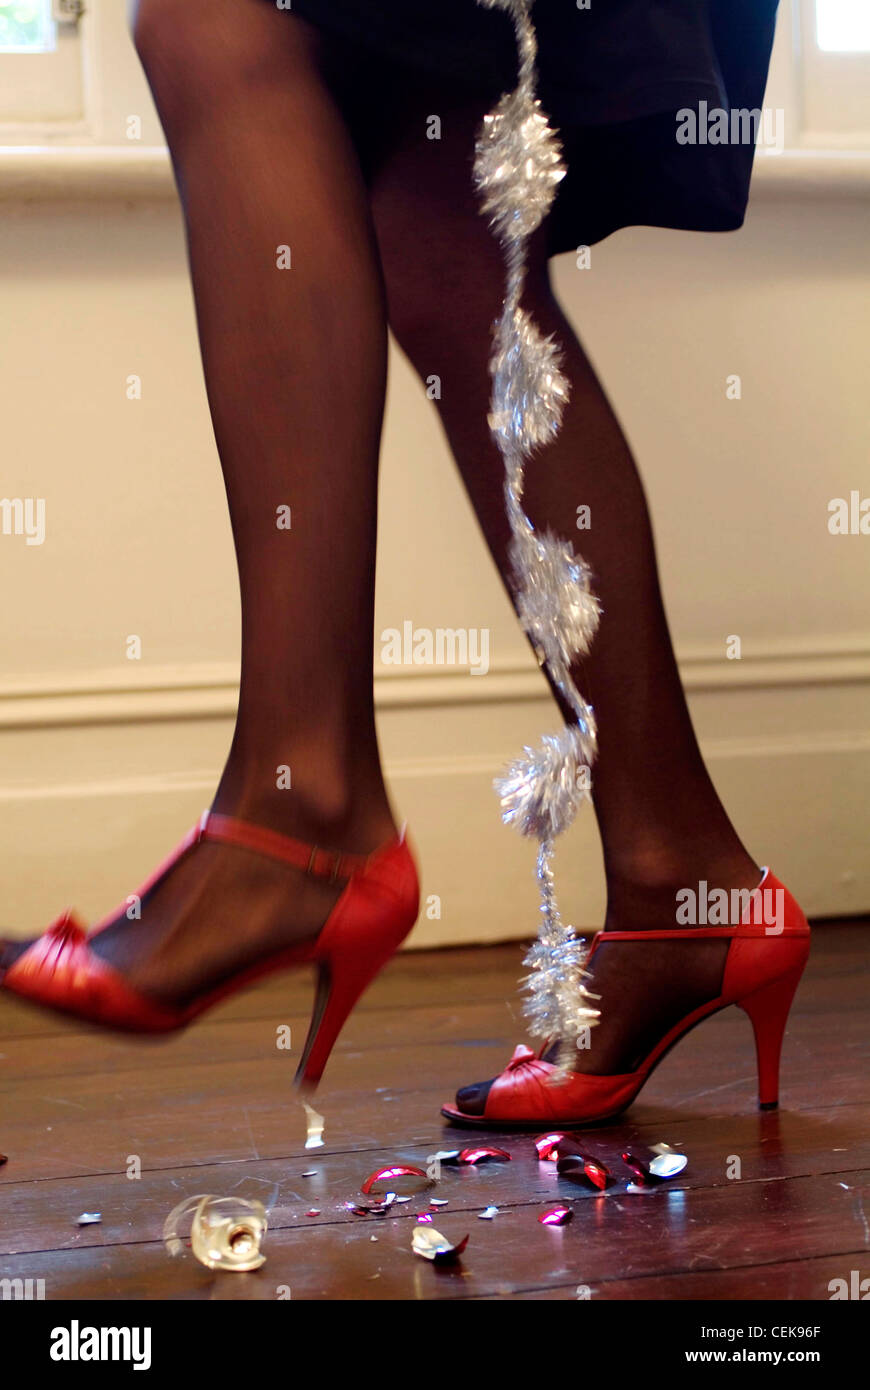 78b817f2c92 Cropped lower legs of female wearing black tights and red high ...